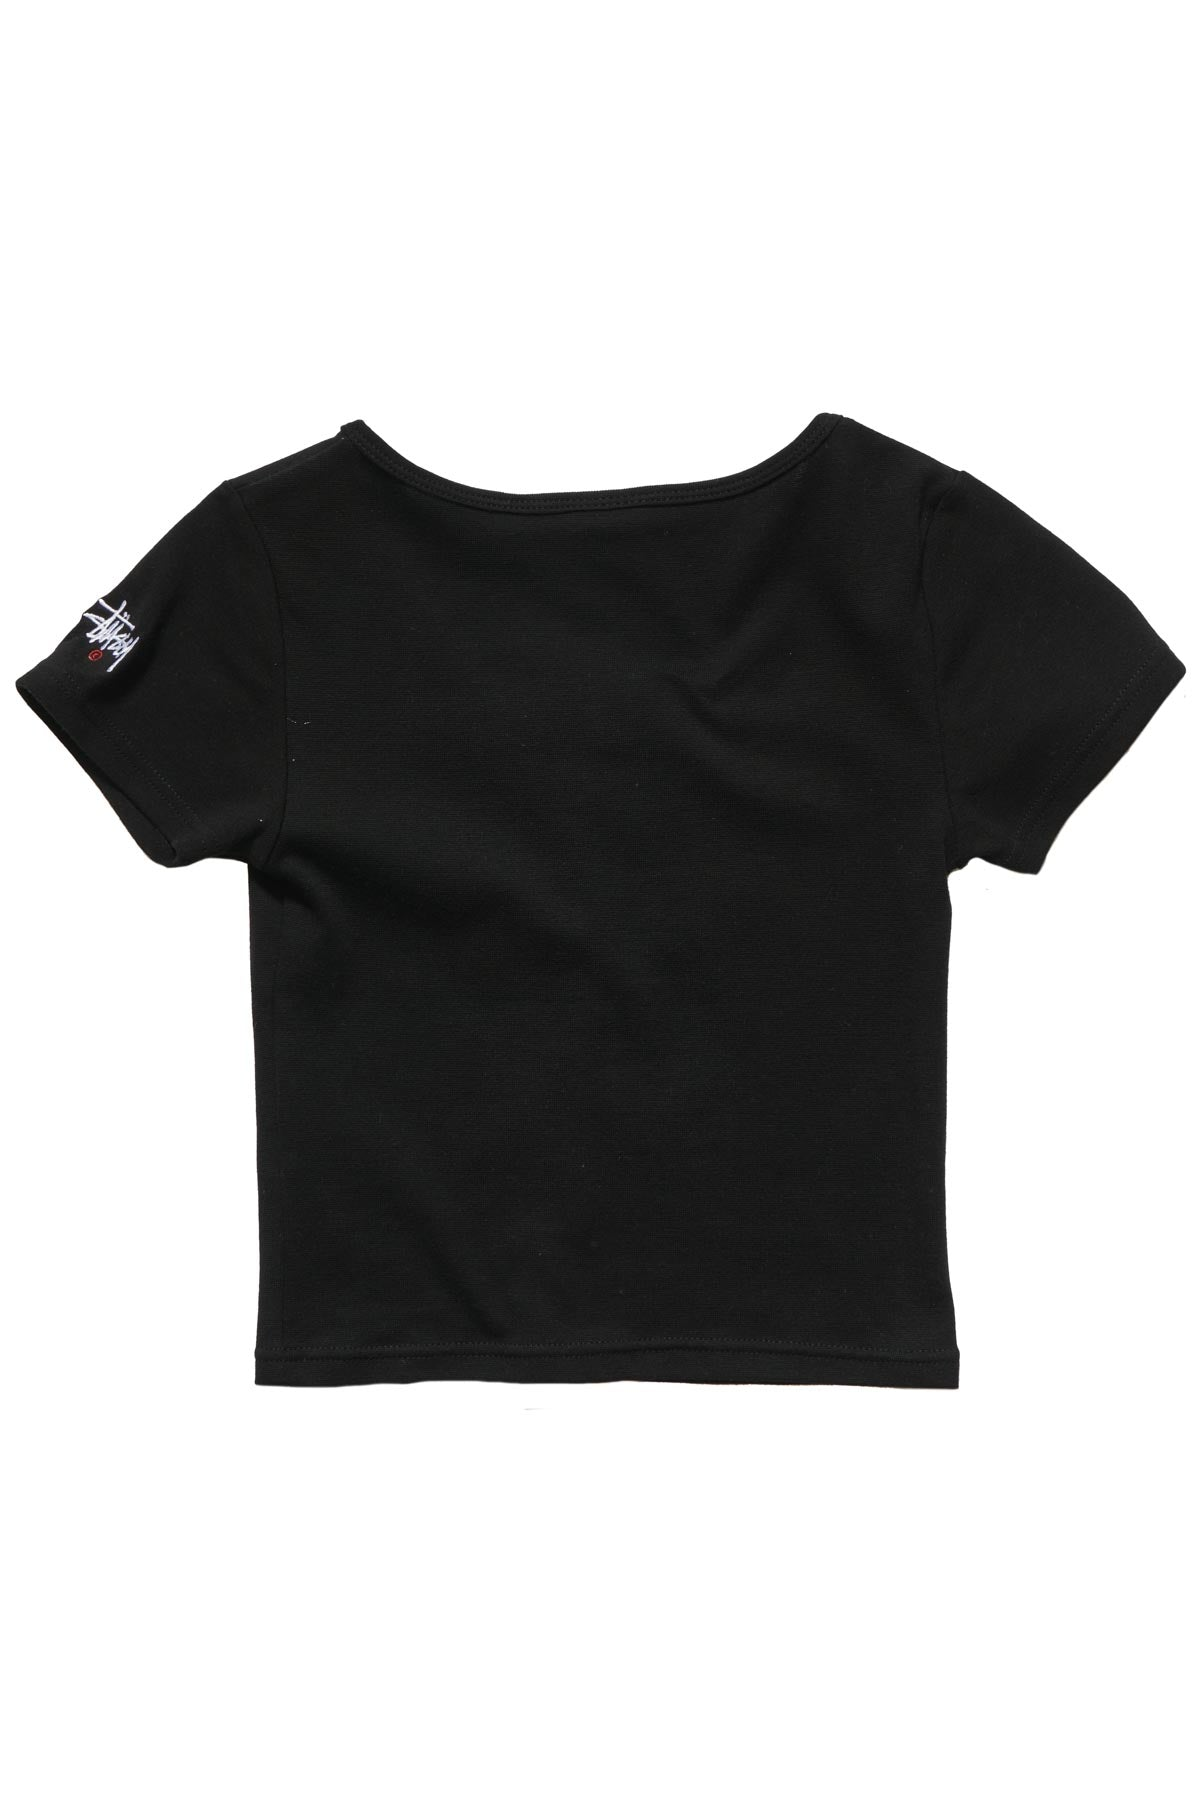 Graffiti Rib Scoop Neck Tee